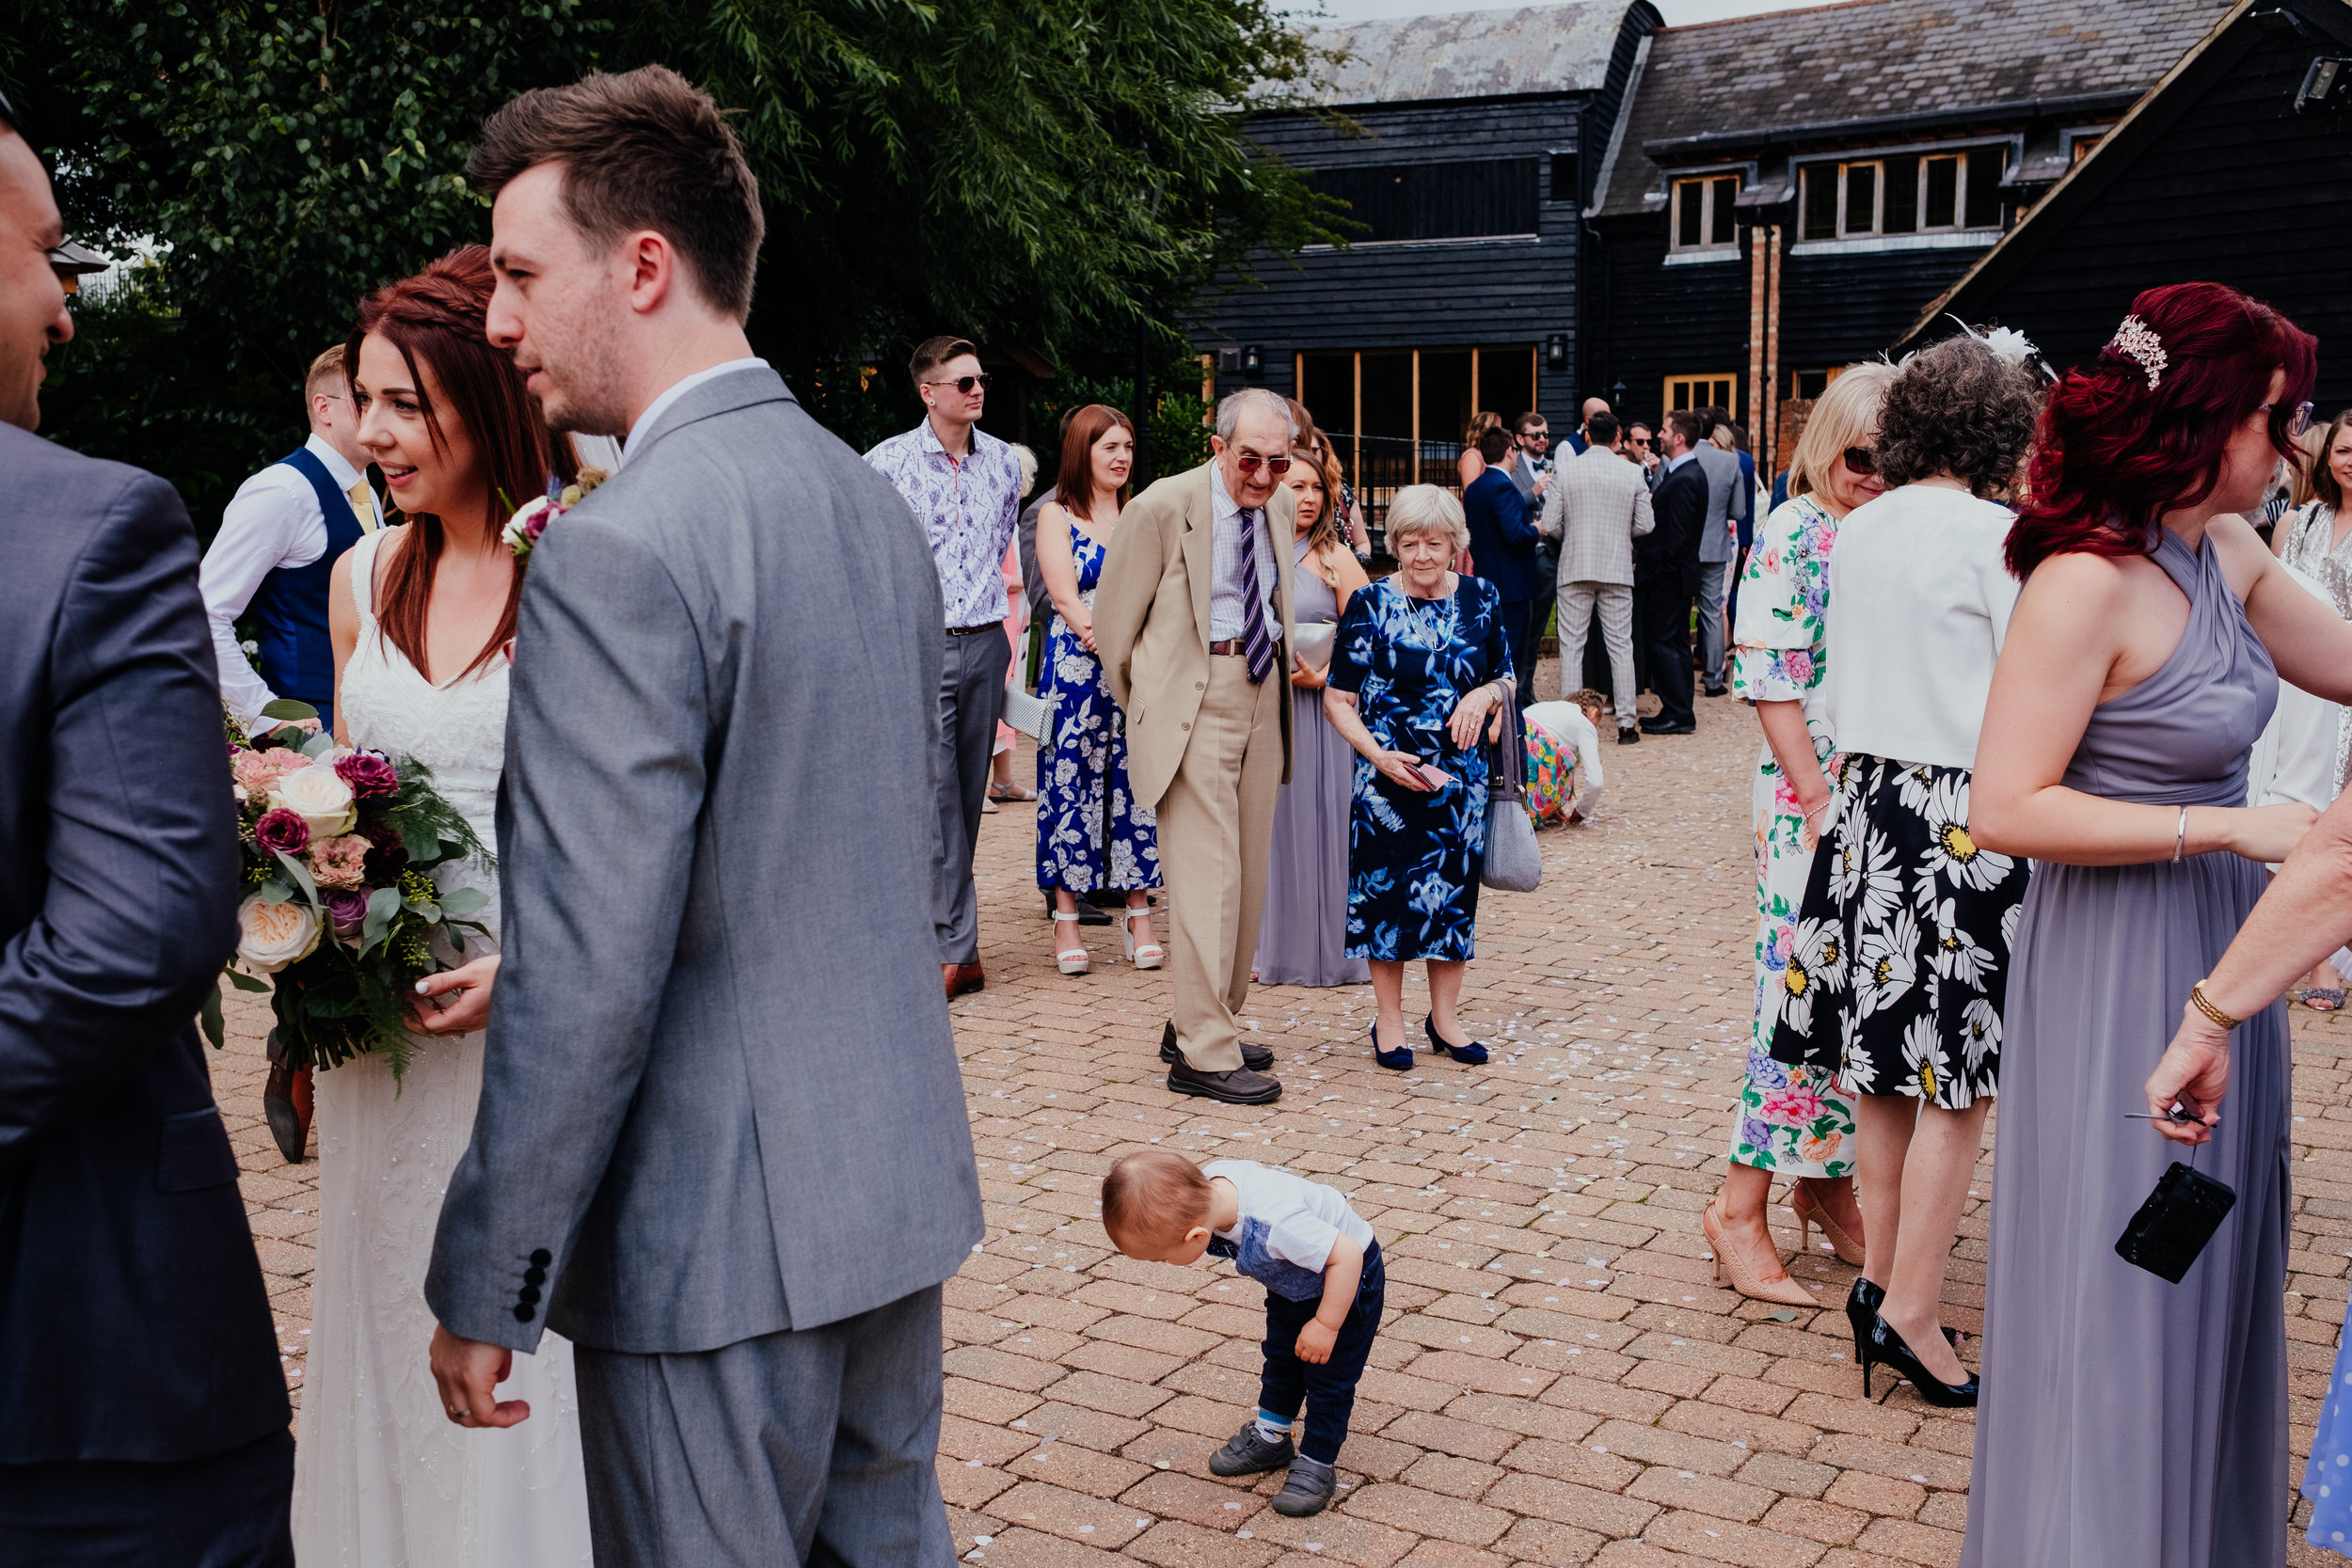 Wedding guests watch small child at Tewin Bury Farm wedding